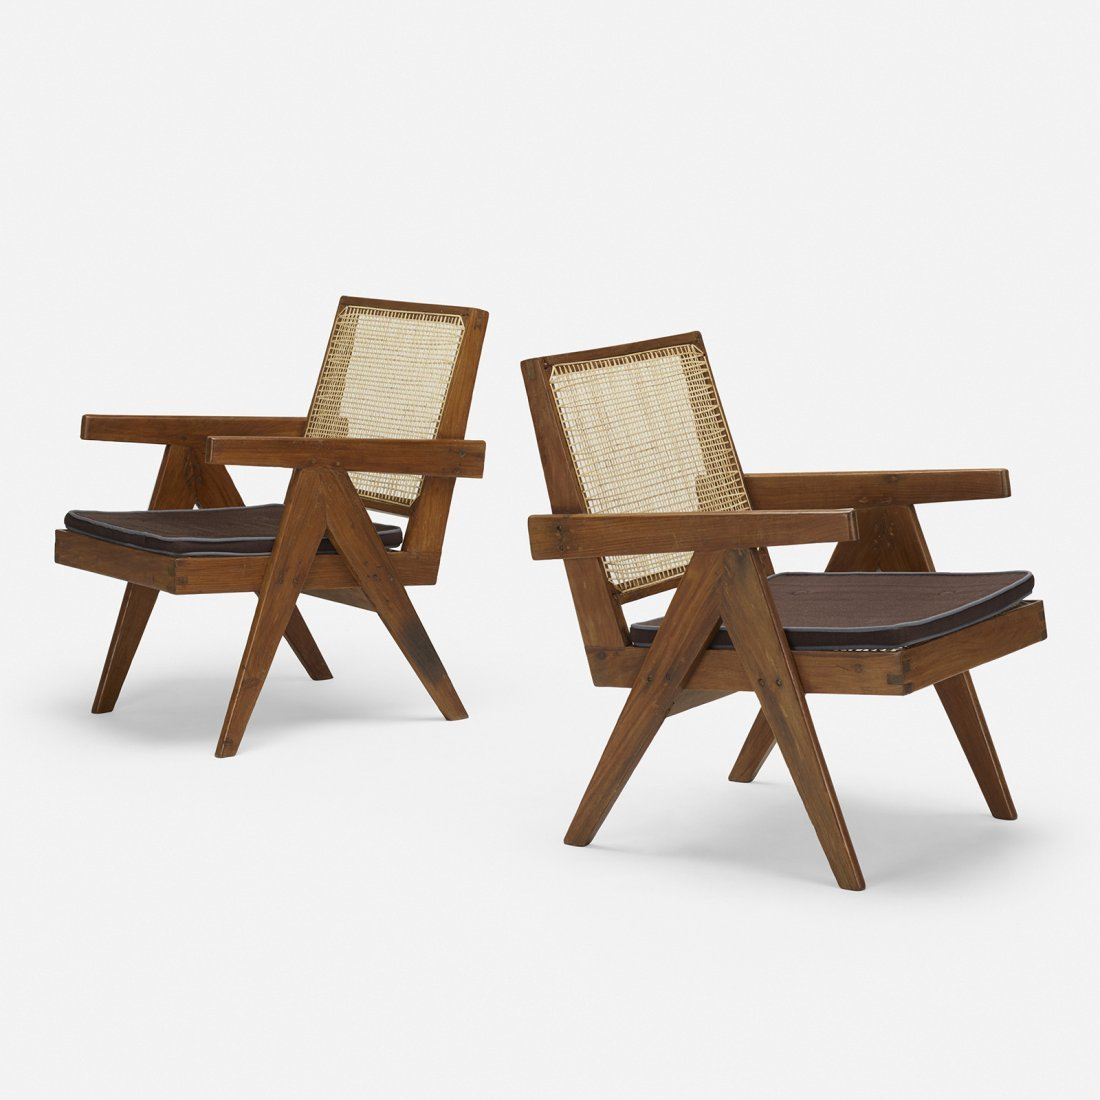 Pierre Jeanneret, lounge chairs, Chandigarh, pair